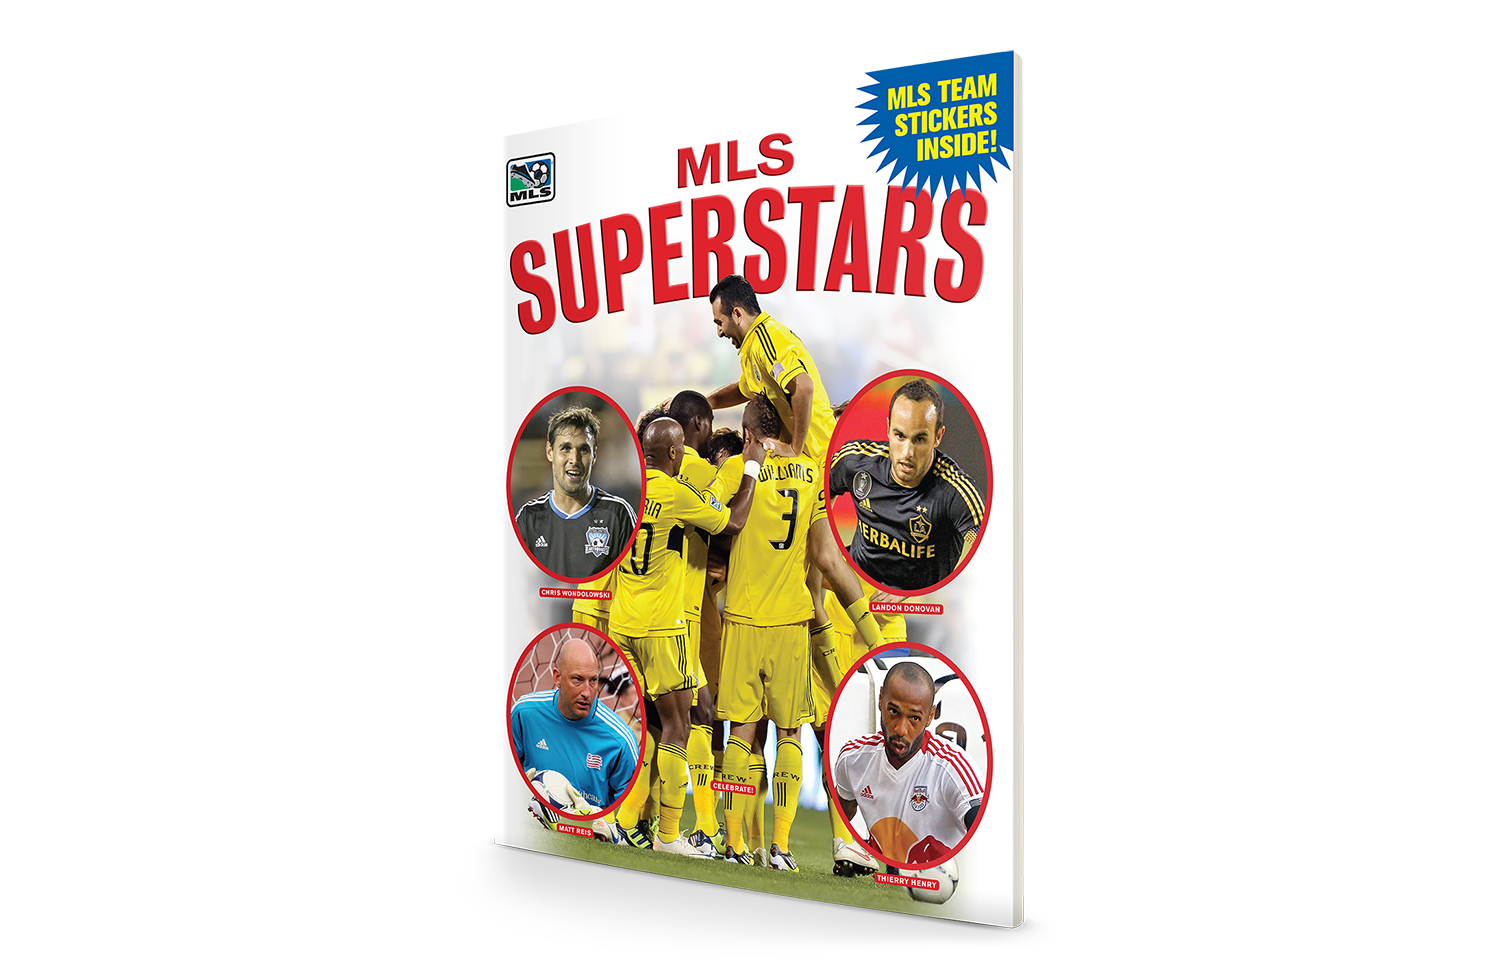 mls-superstars-cover2.png